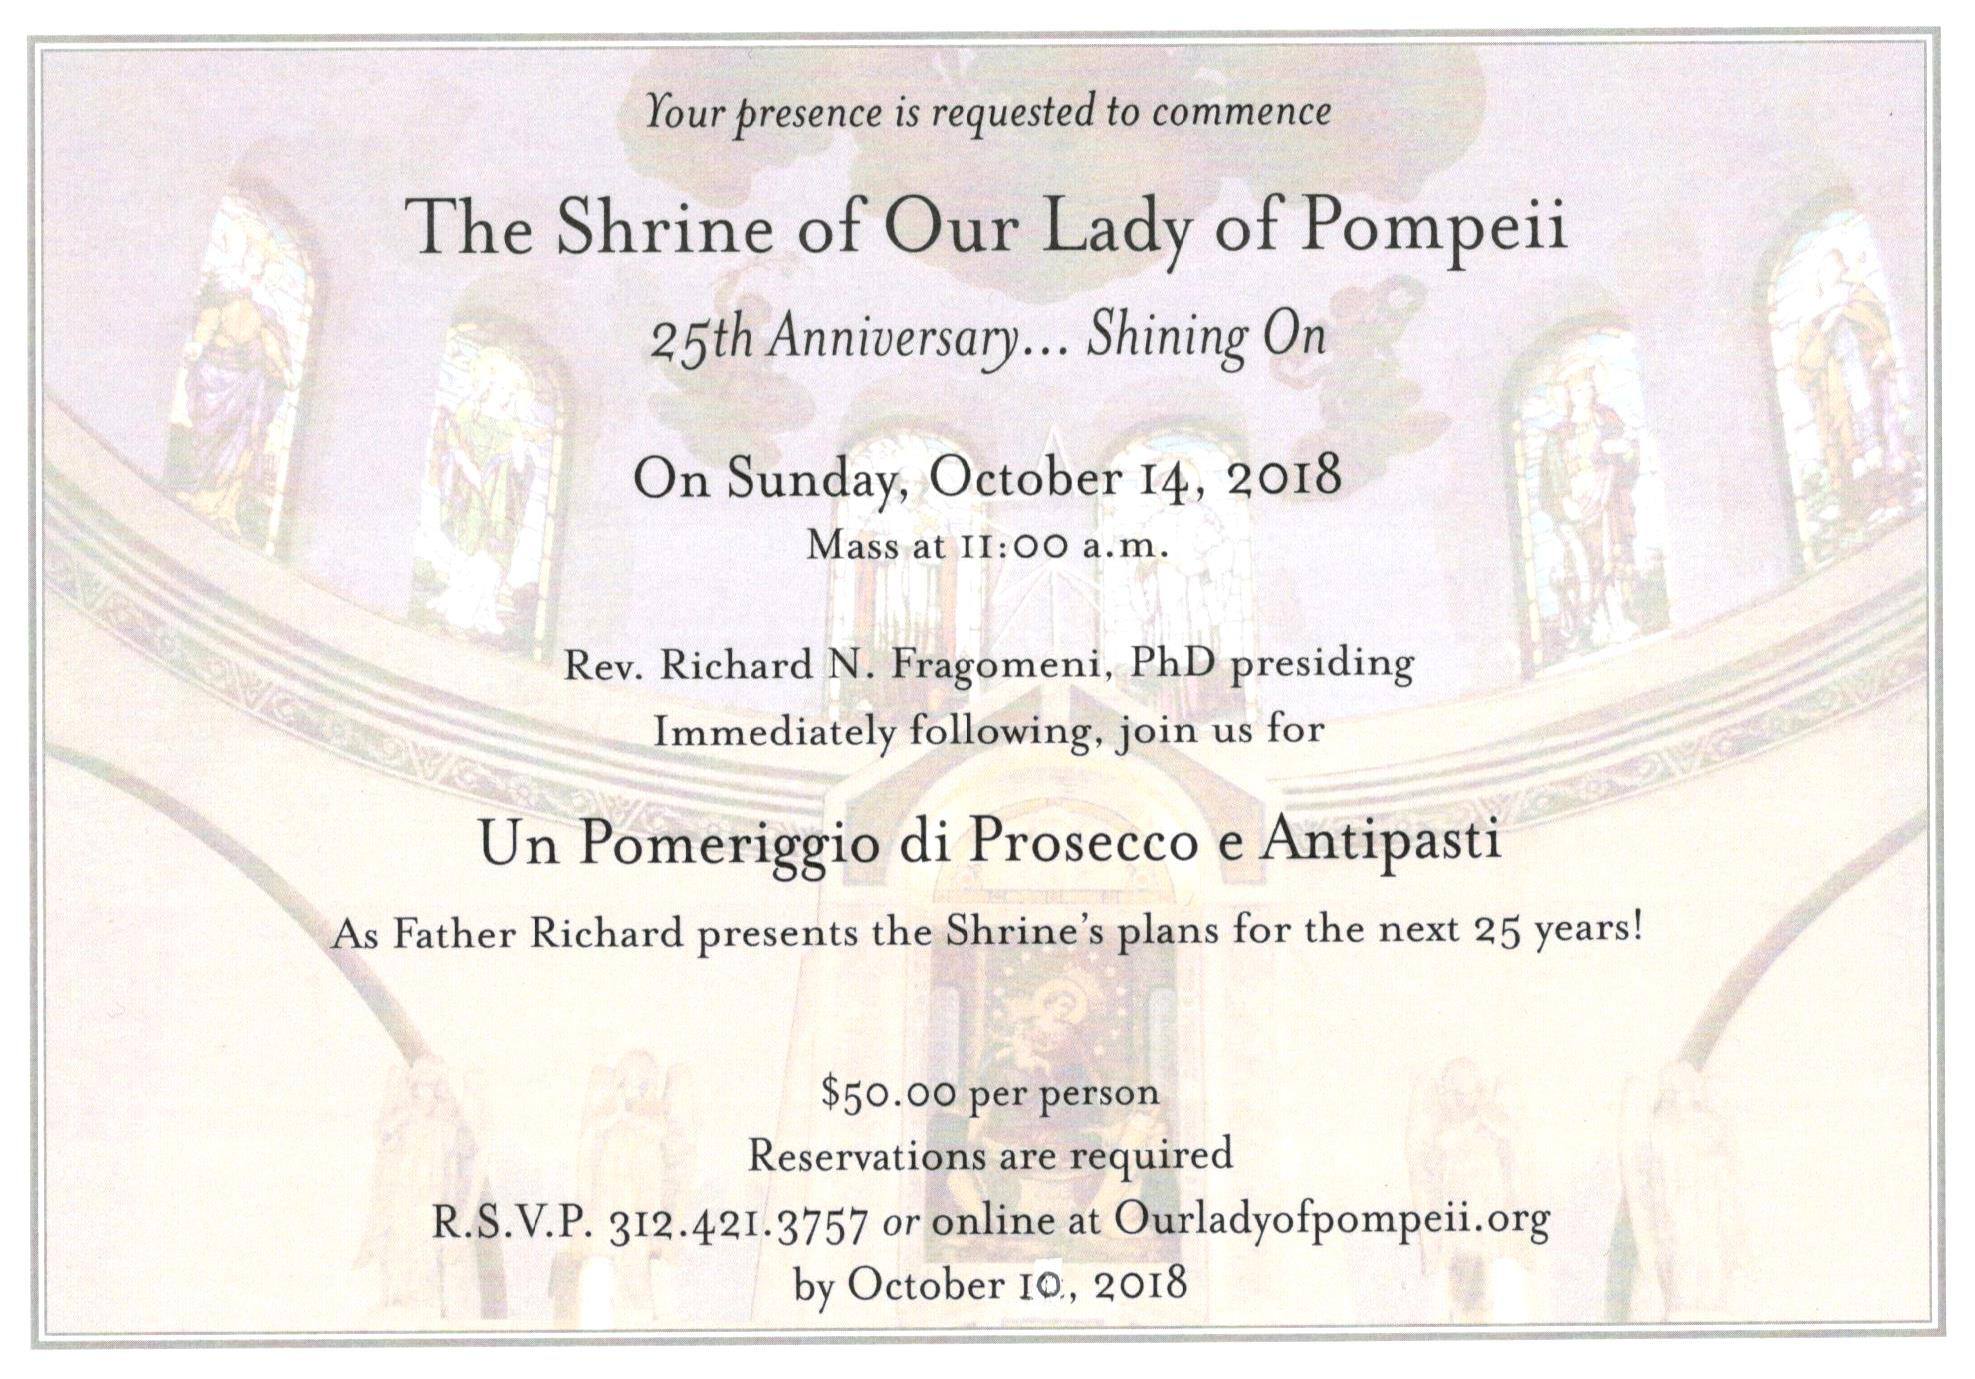 The Shrine of Our Lady of Pompeii 25th Anniversary... Shining On